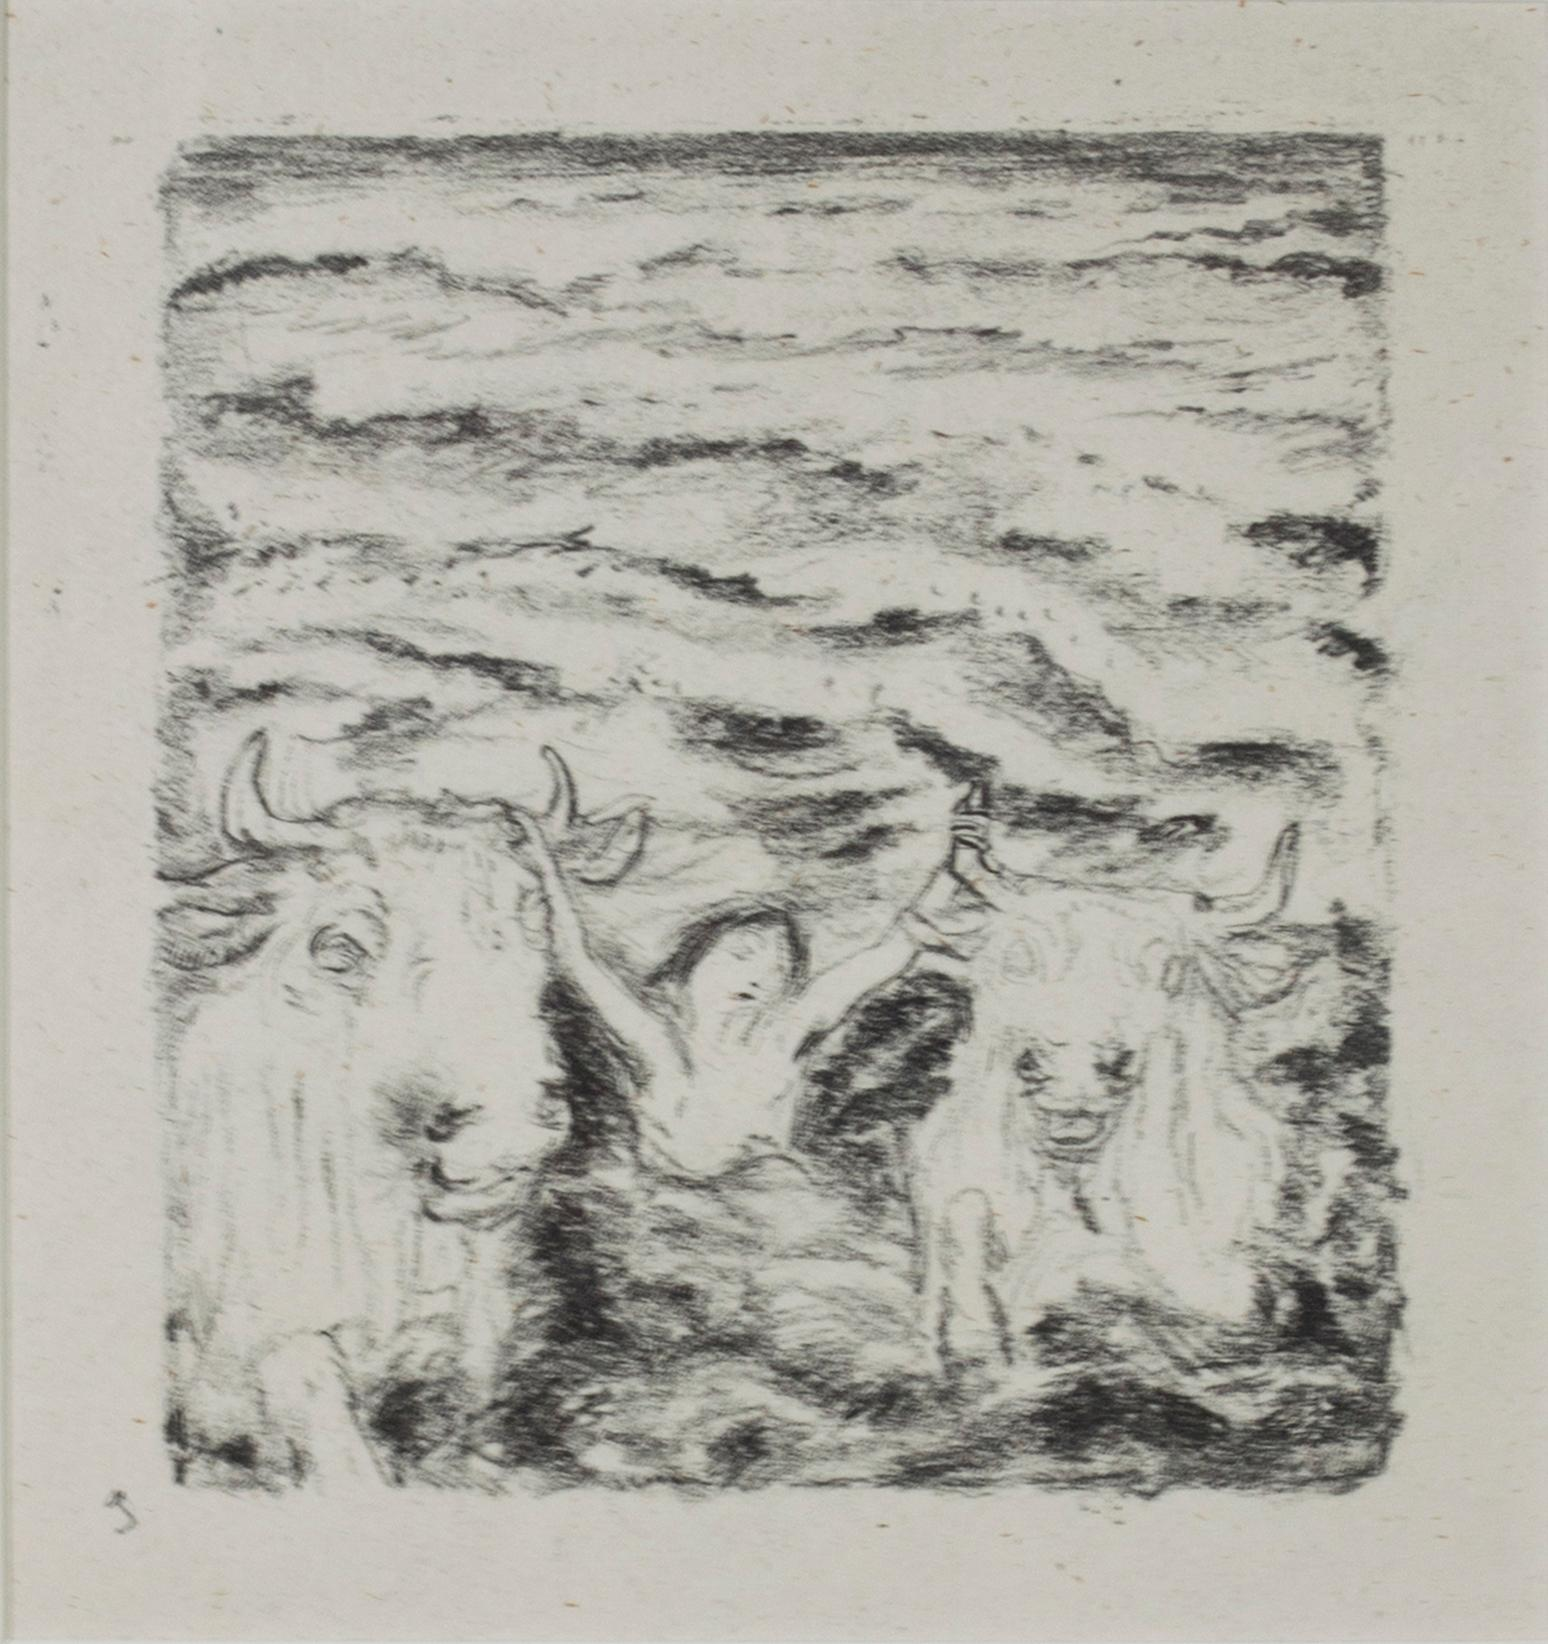 """""""Daphnis et Chloe (Two Bulls & Person in Water),"""" Lithograph signed by Bonnard"""